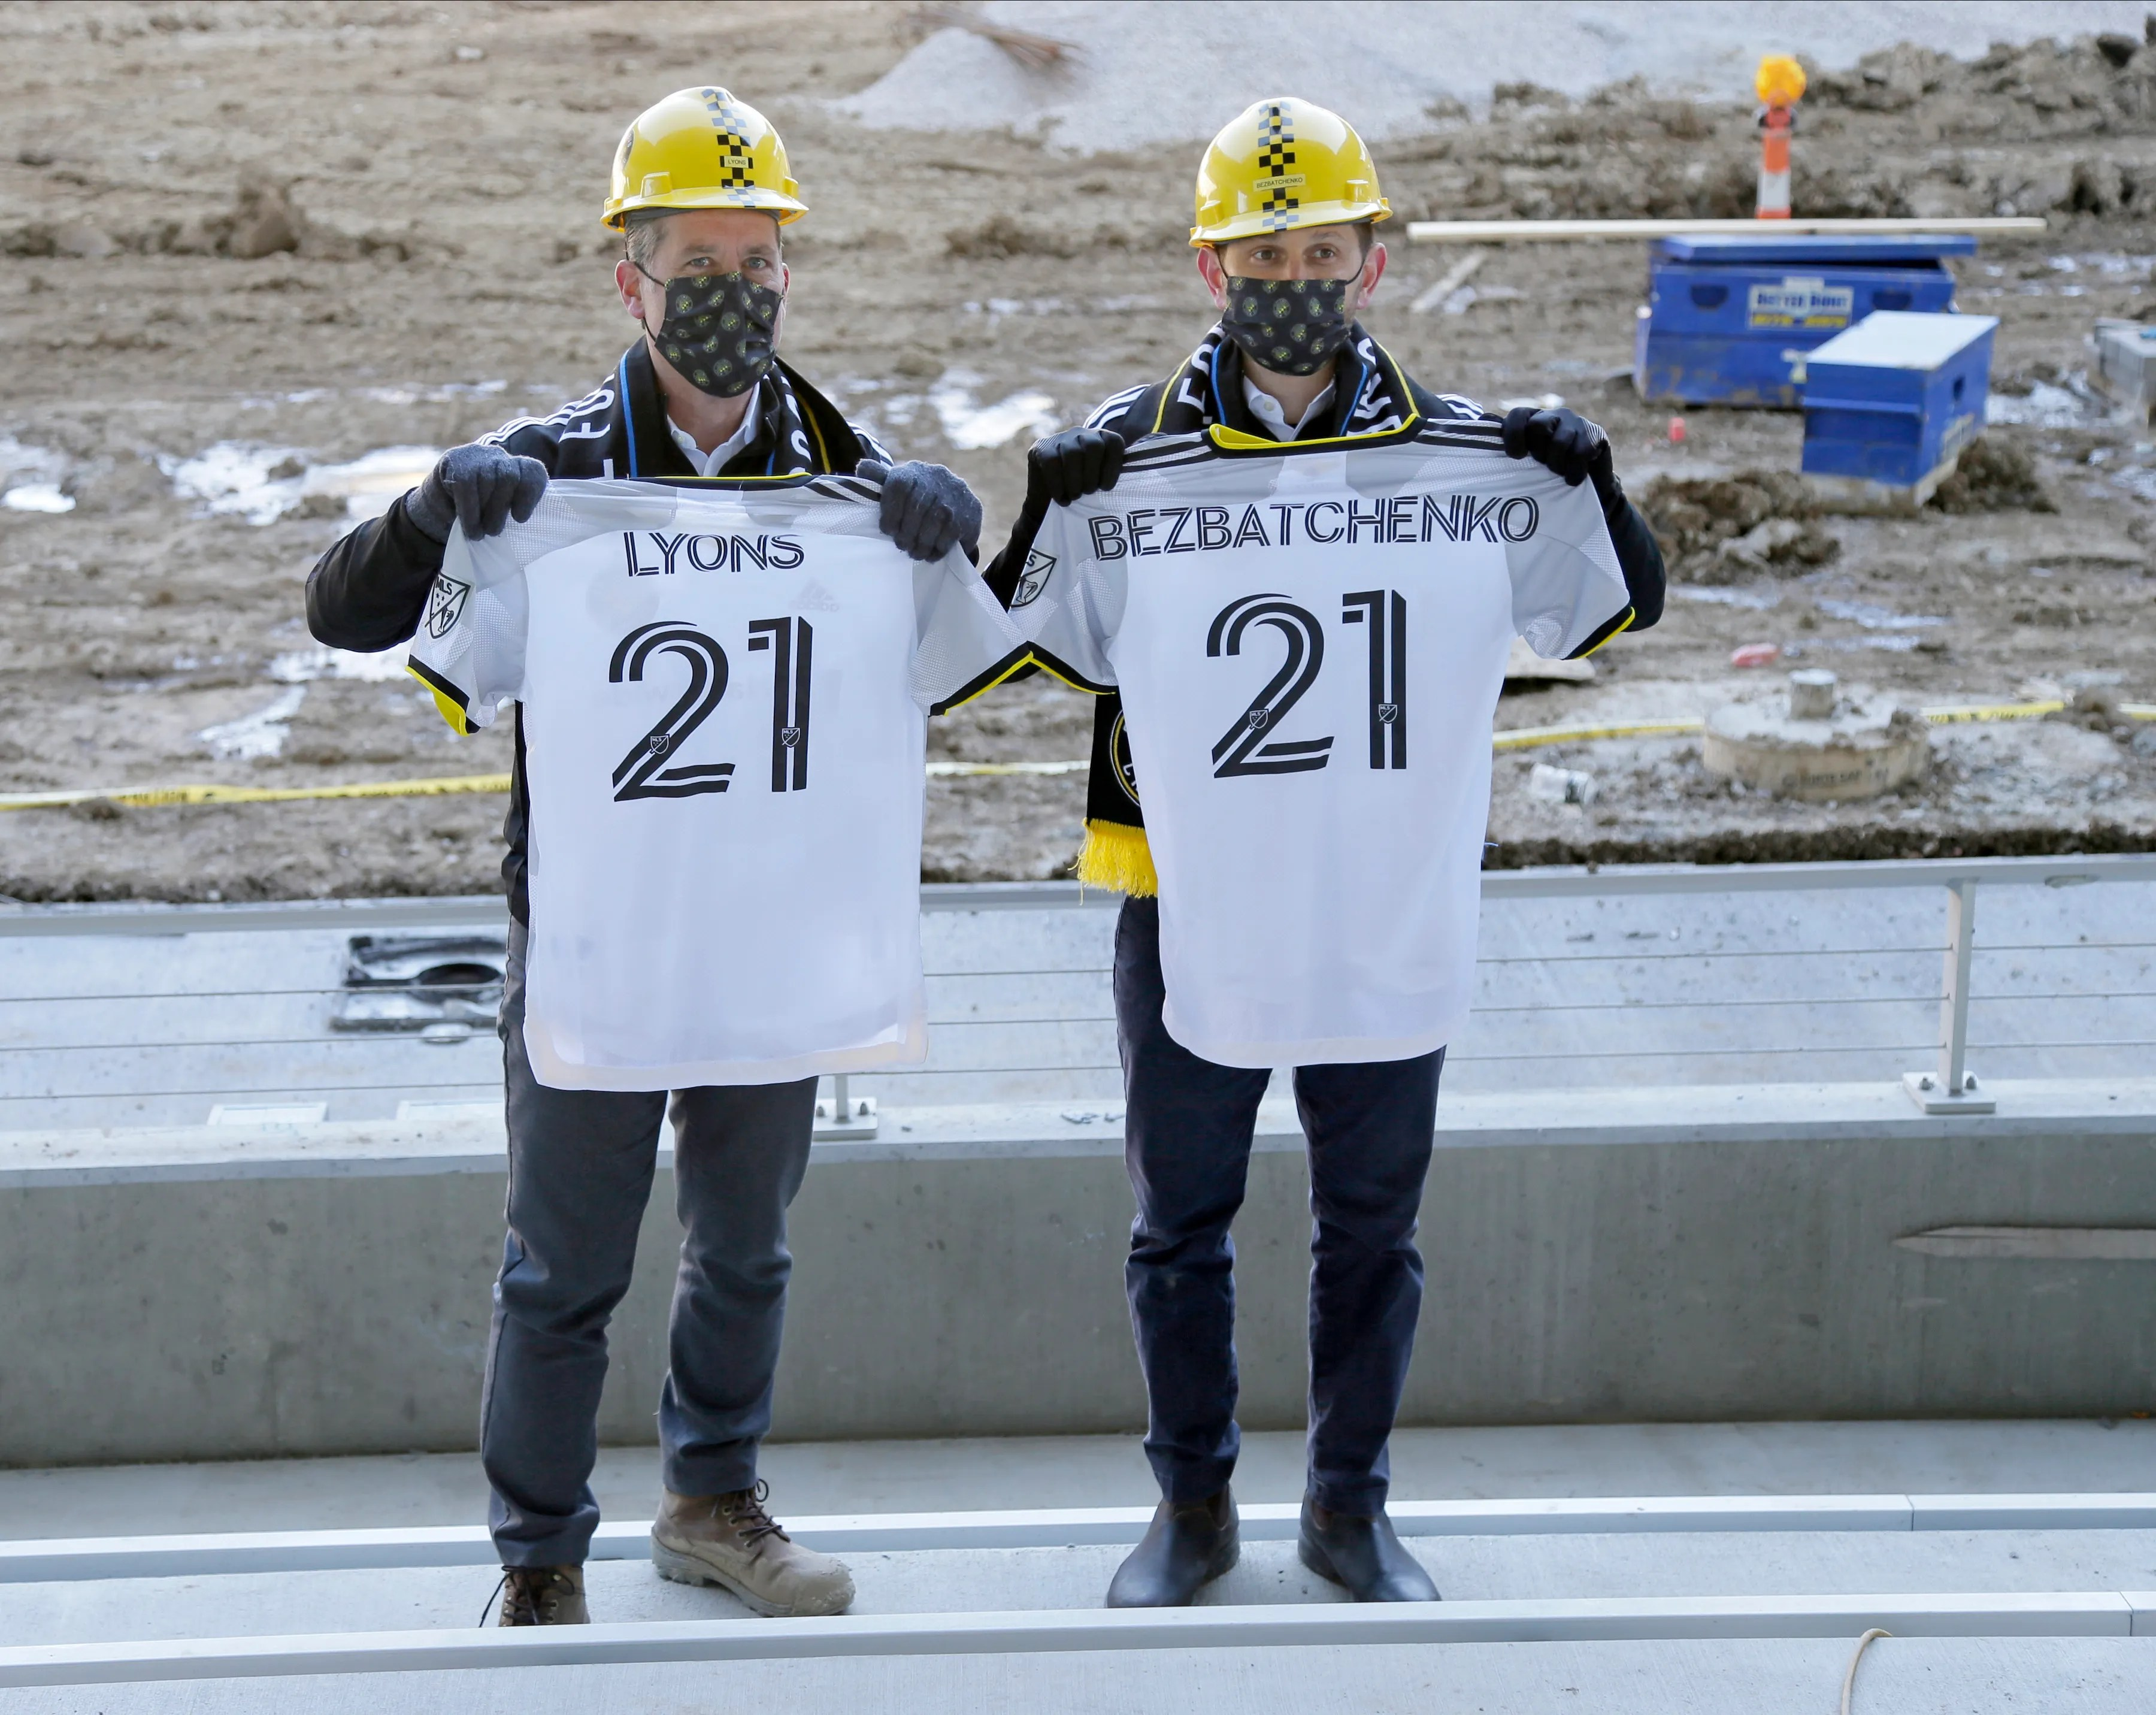 Tim Bezbatchenko, President and CEO of Crew SC, and Steve Lyons, Executive Vice President of Crew SC, Director of Business, pose with jerseys as Columbus Crew SC unveiled its main gear for the 2021 season at an event held at New Crew Stadium.